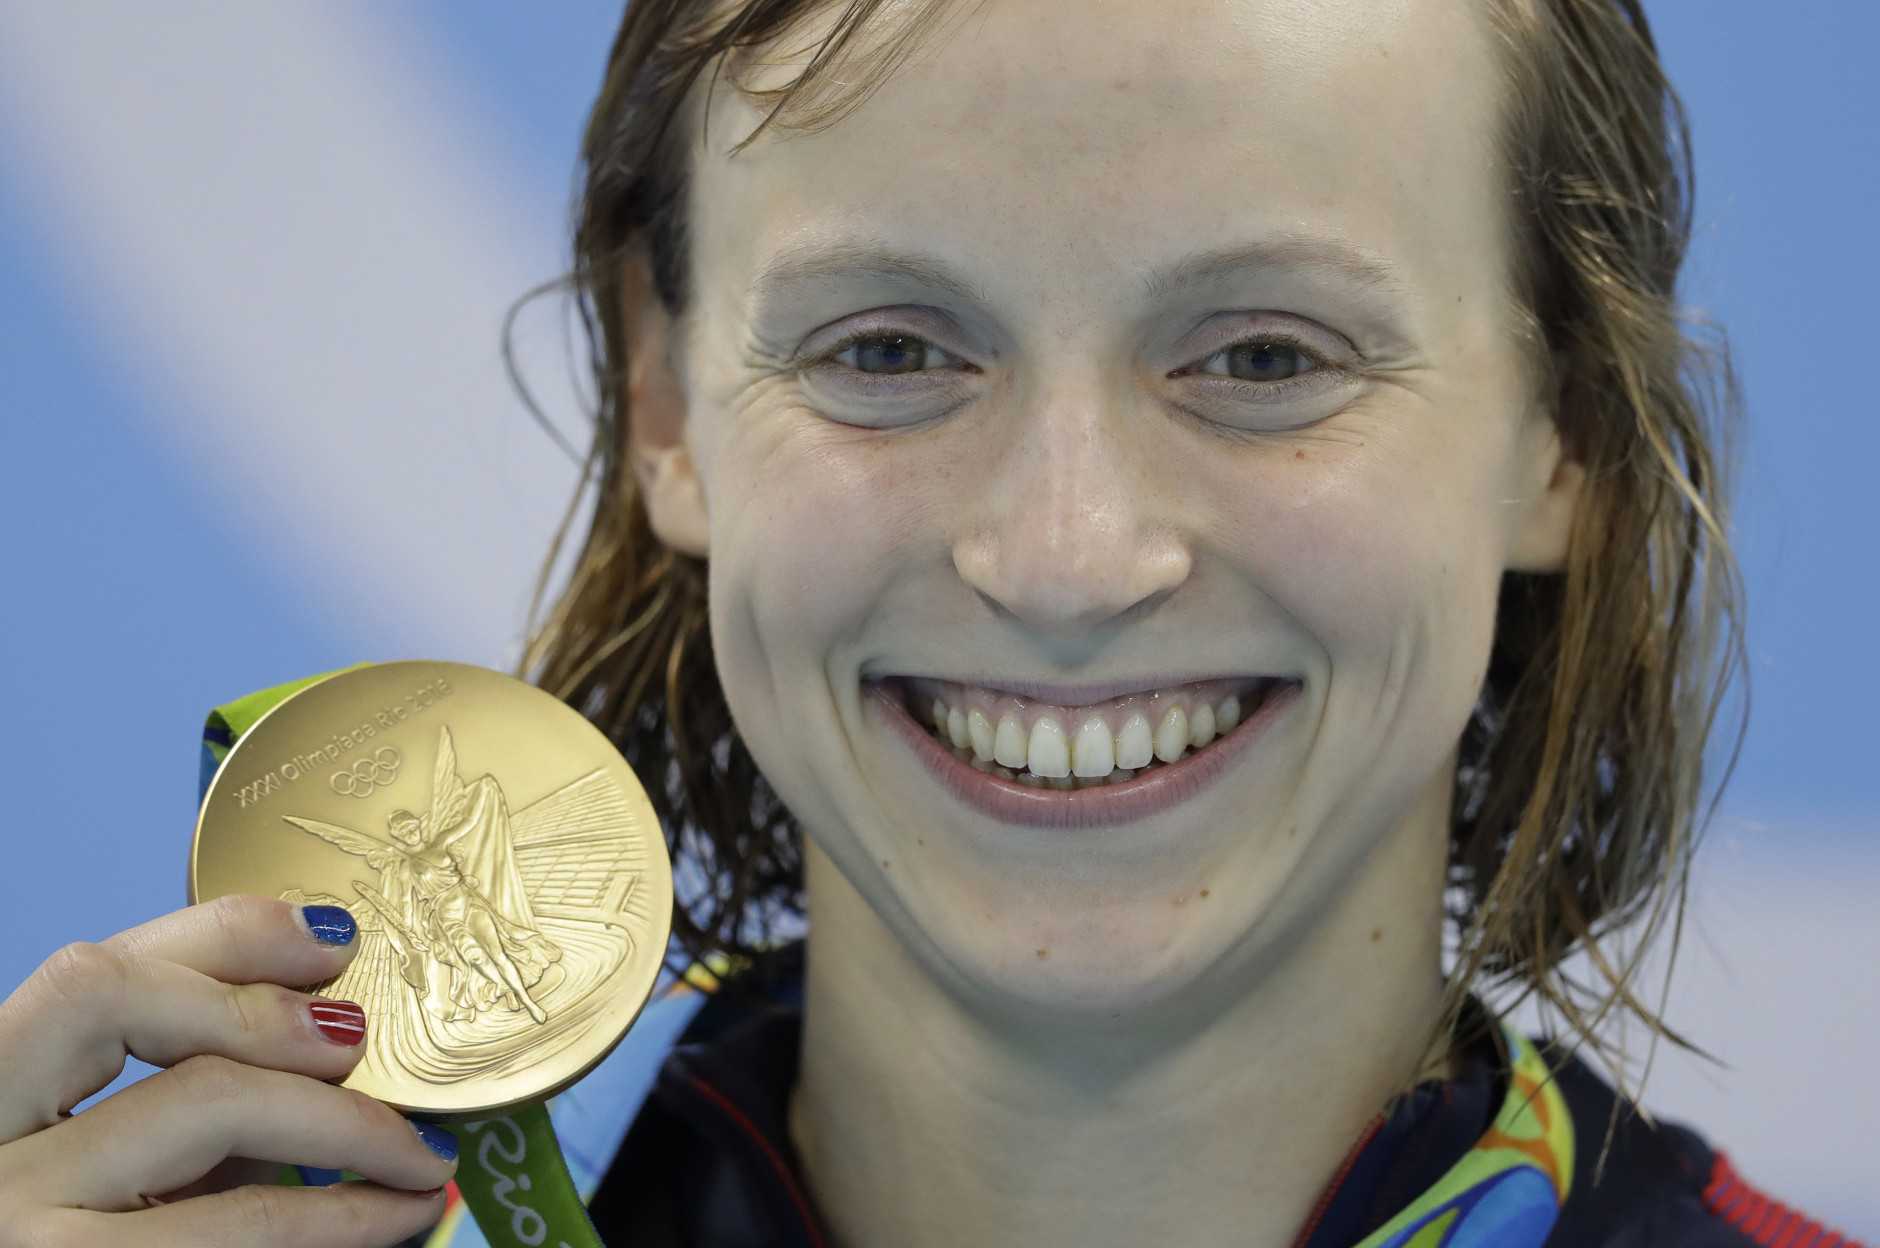 United States' Katie Ledecky shows off her gold medal after setting a new world record in the women's 400-meter freestyle final during the swimming competitions at the 2016 Summer Olympics, Monday, Aug. 8, 2016, in Rio de Janeiro, Brazil. (AP Photo/Michael Sohn)